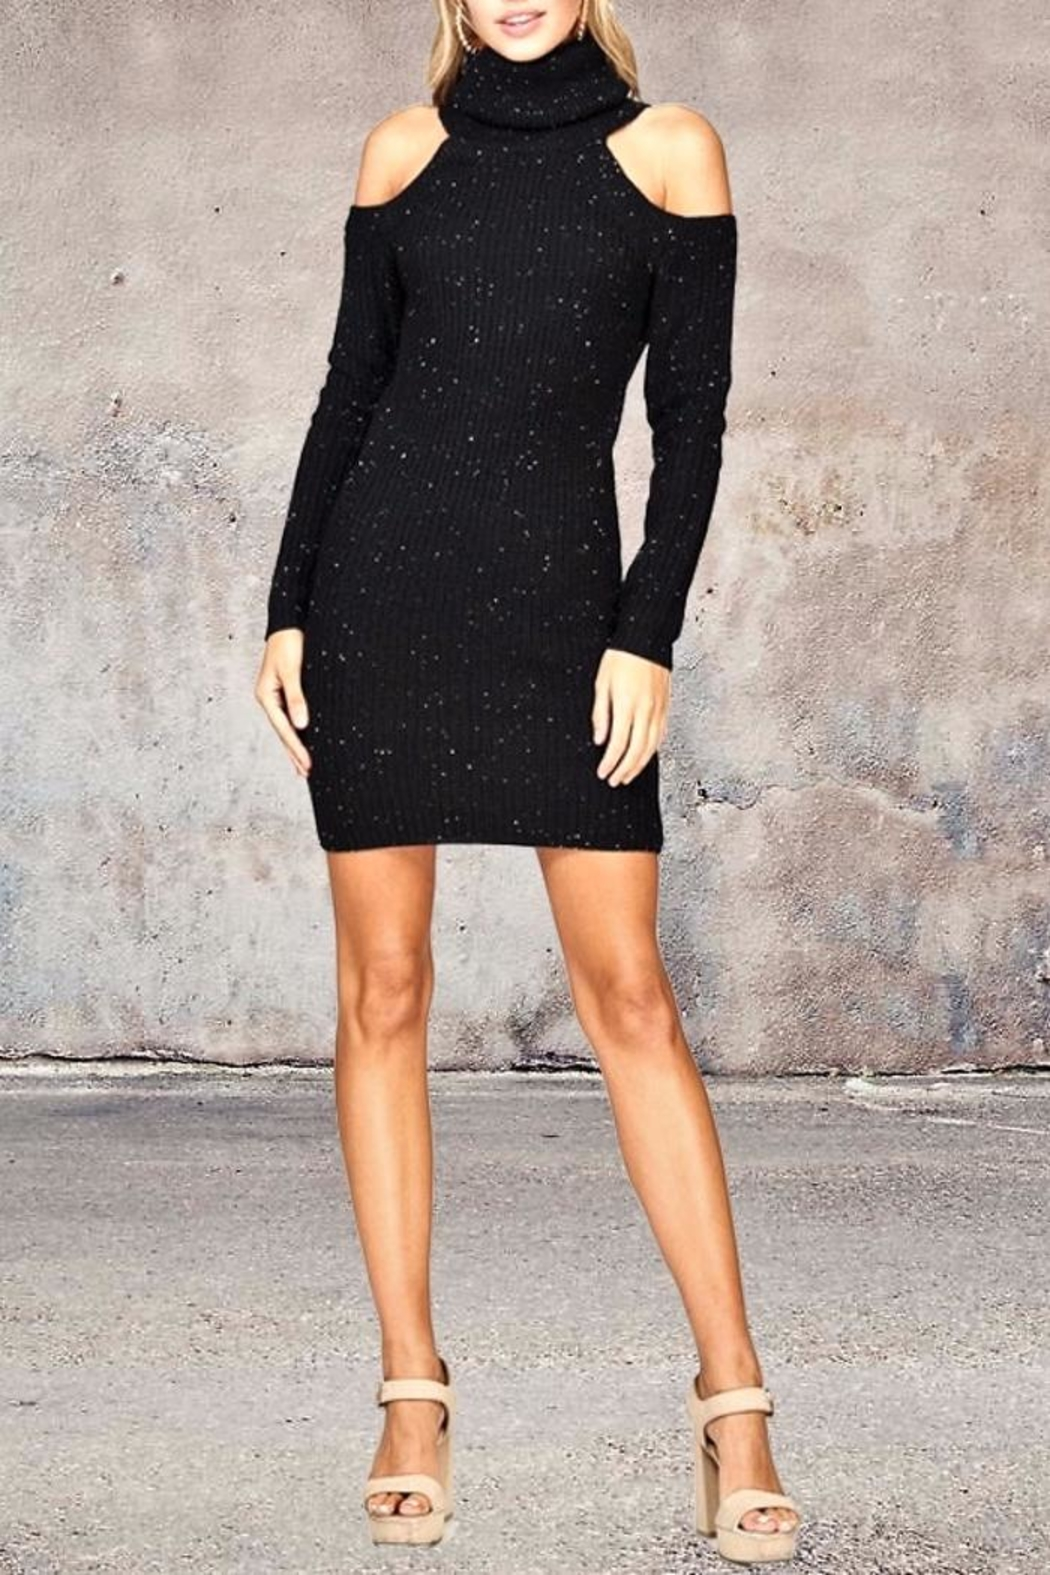 People Outfitter Tunic Sweater Dress from New York City — Shoptiques